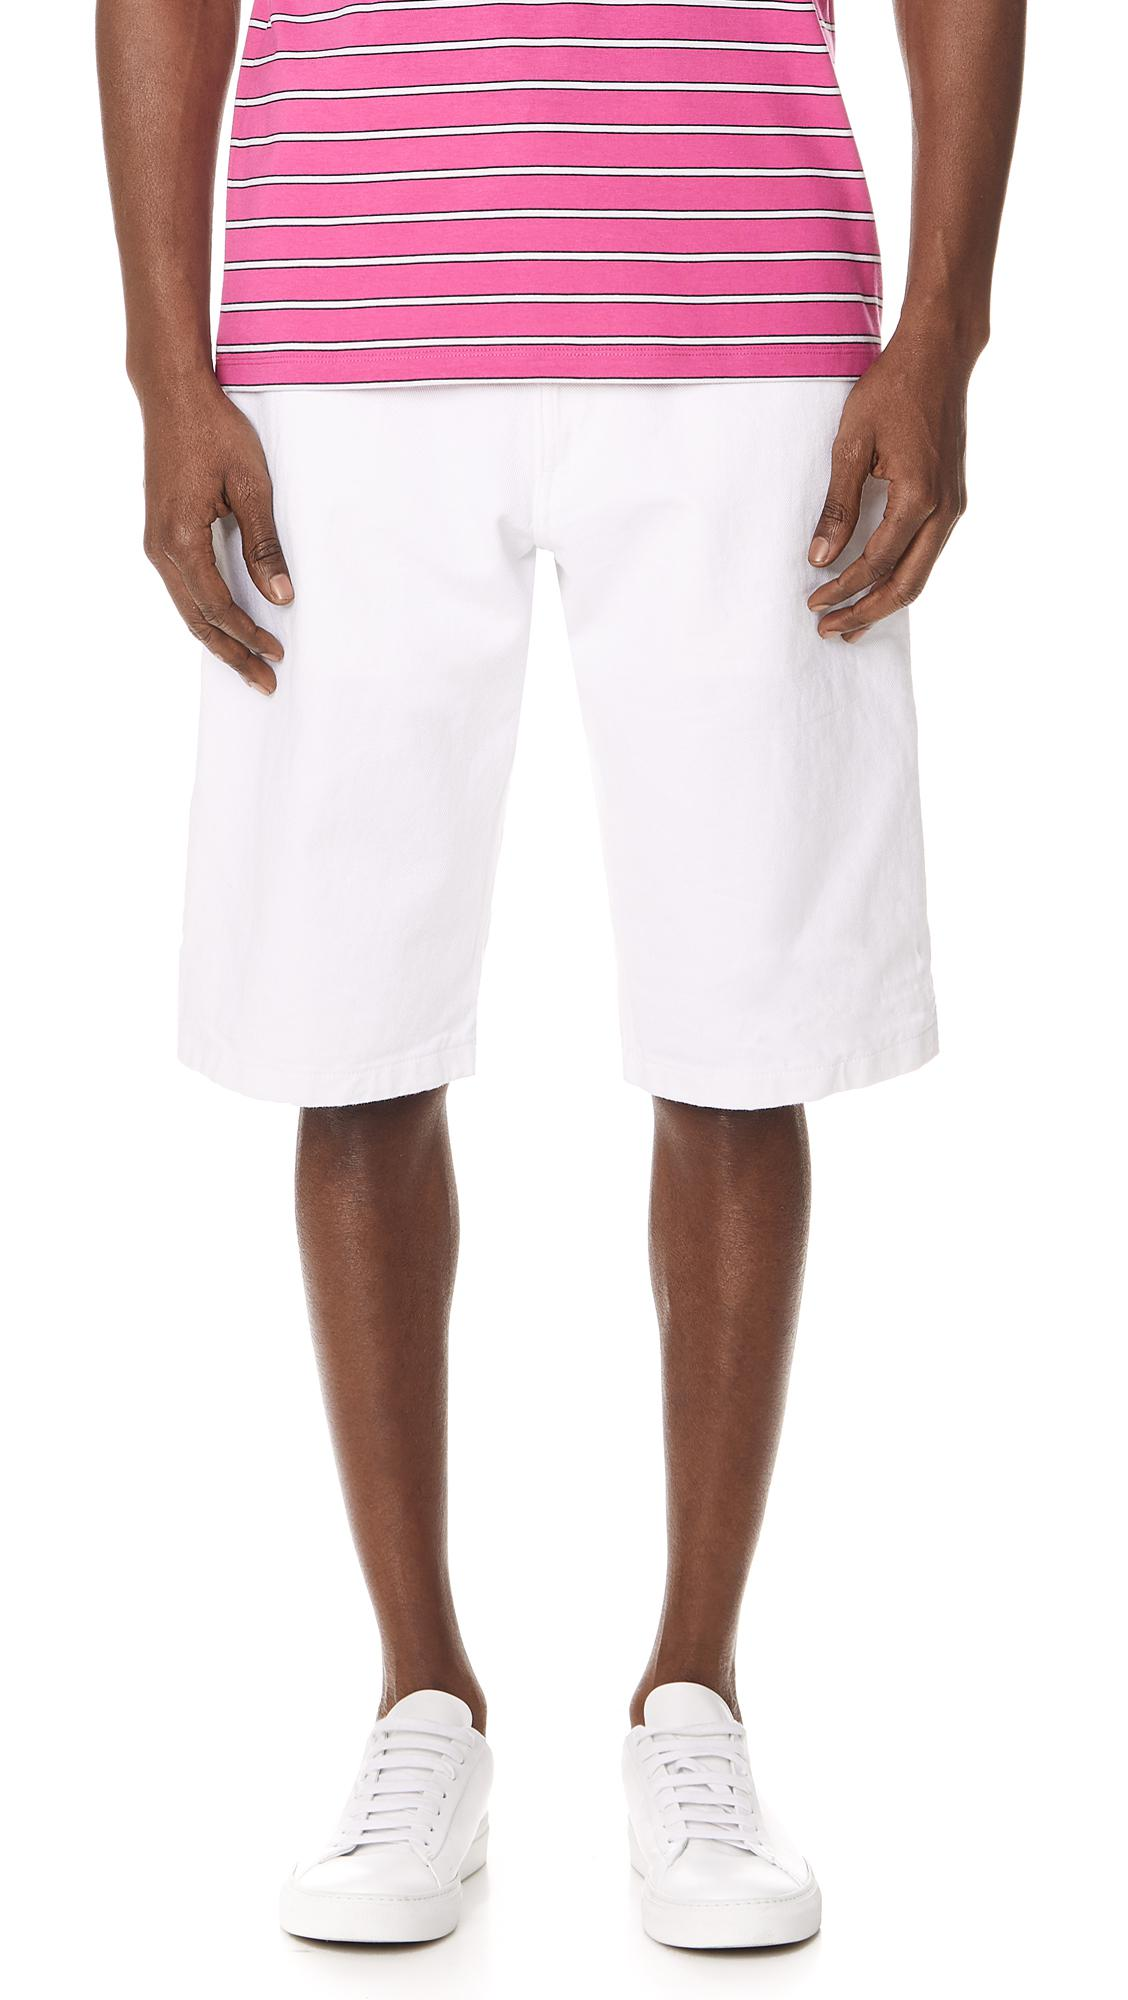 Worker short - White Ami Best Wholesale Sale Online Cheap Cost Clearance Prices mbE6IQc5AP